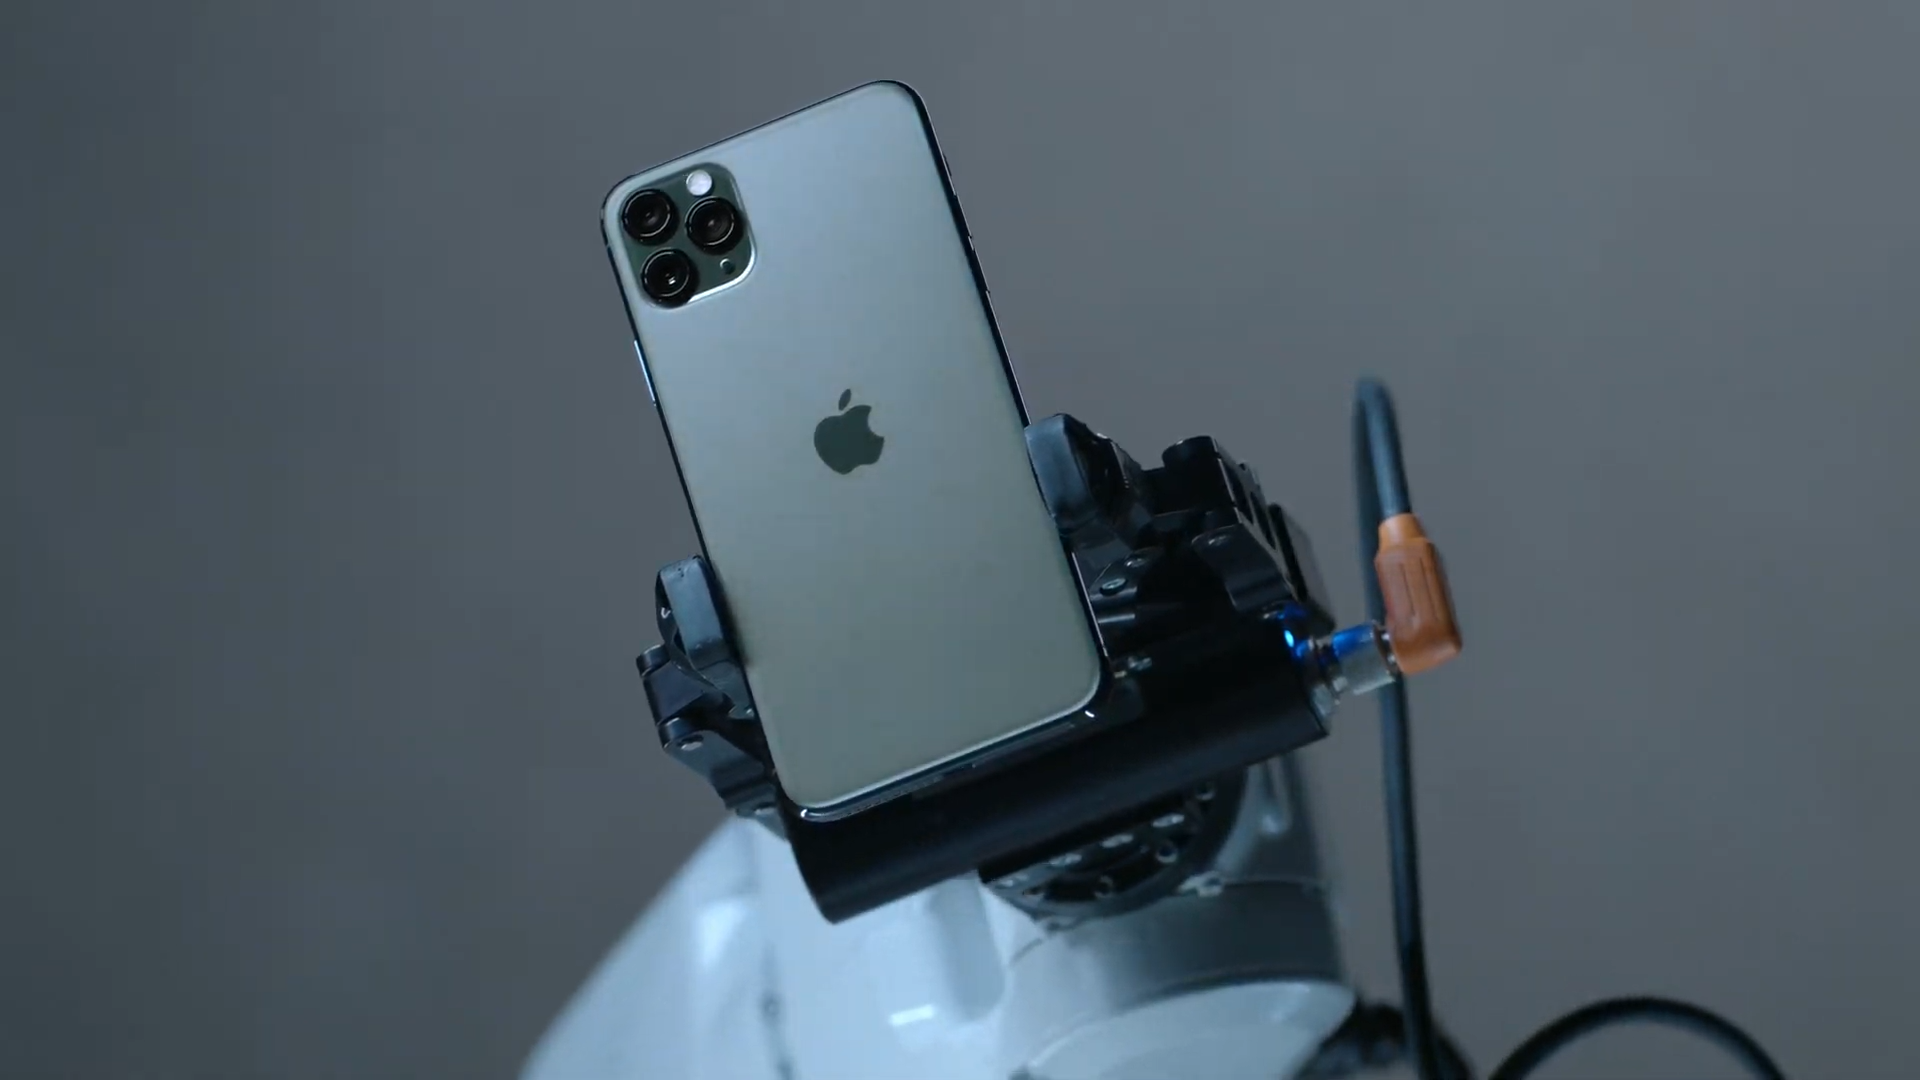 iPhone 11 Pro and iPhone 11 Pro Max Price, release date